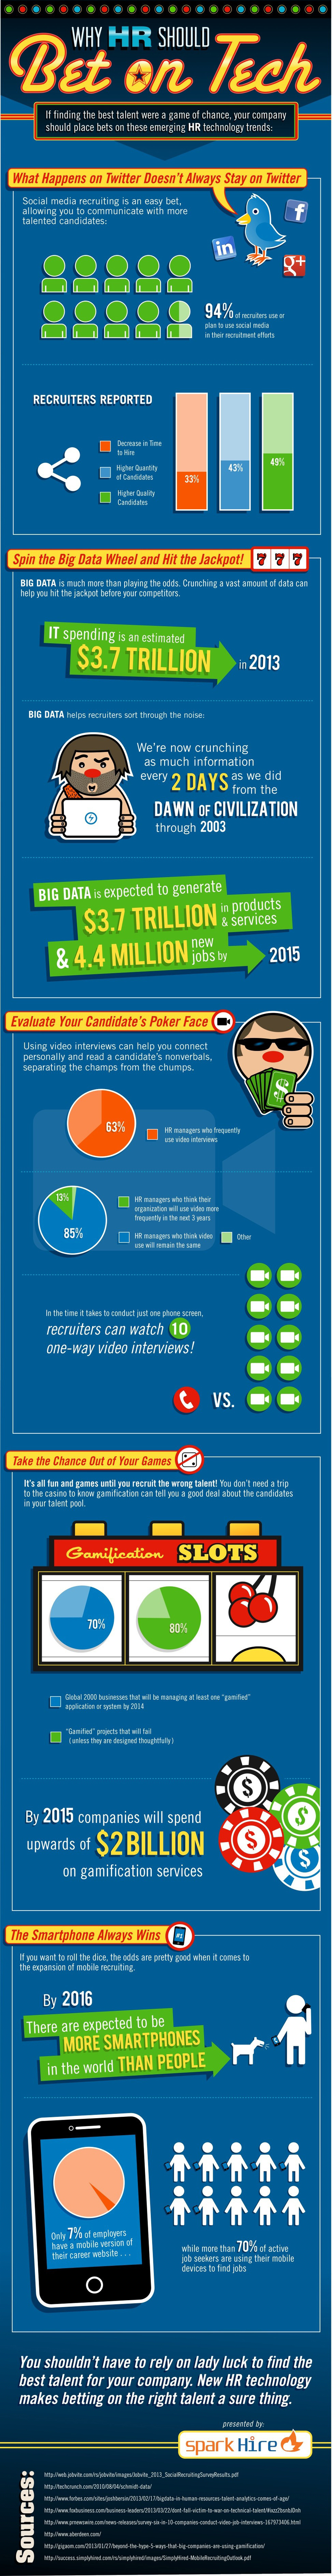 HR-Should-Bet-On-Technology-Infographic-2